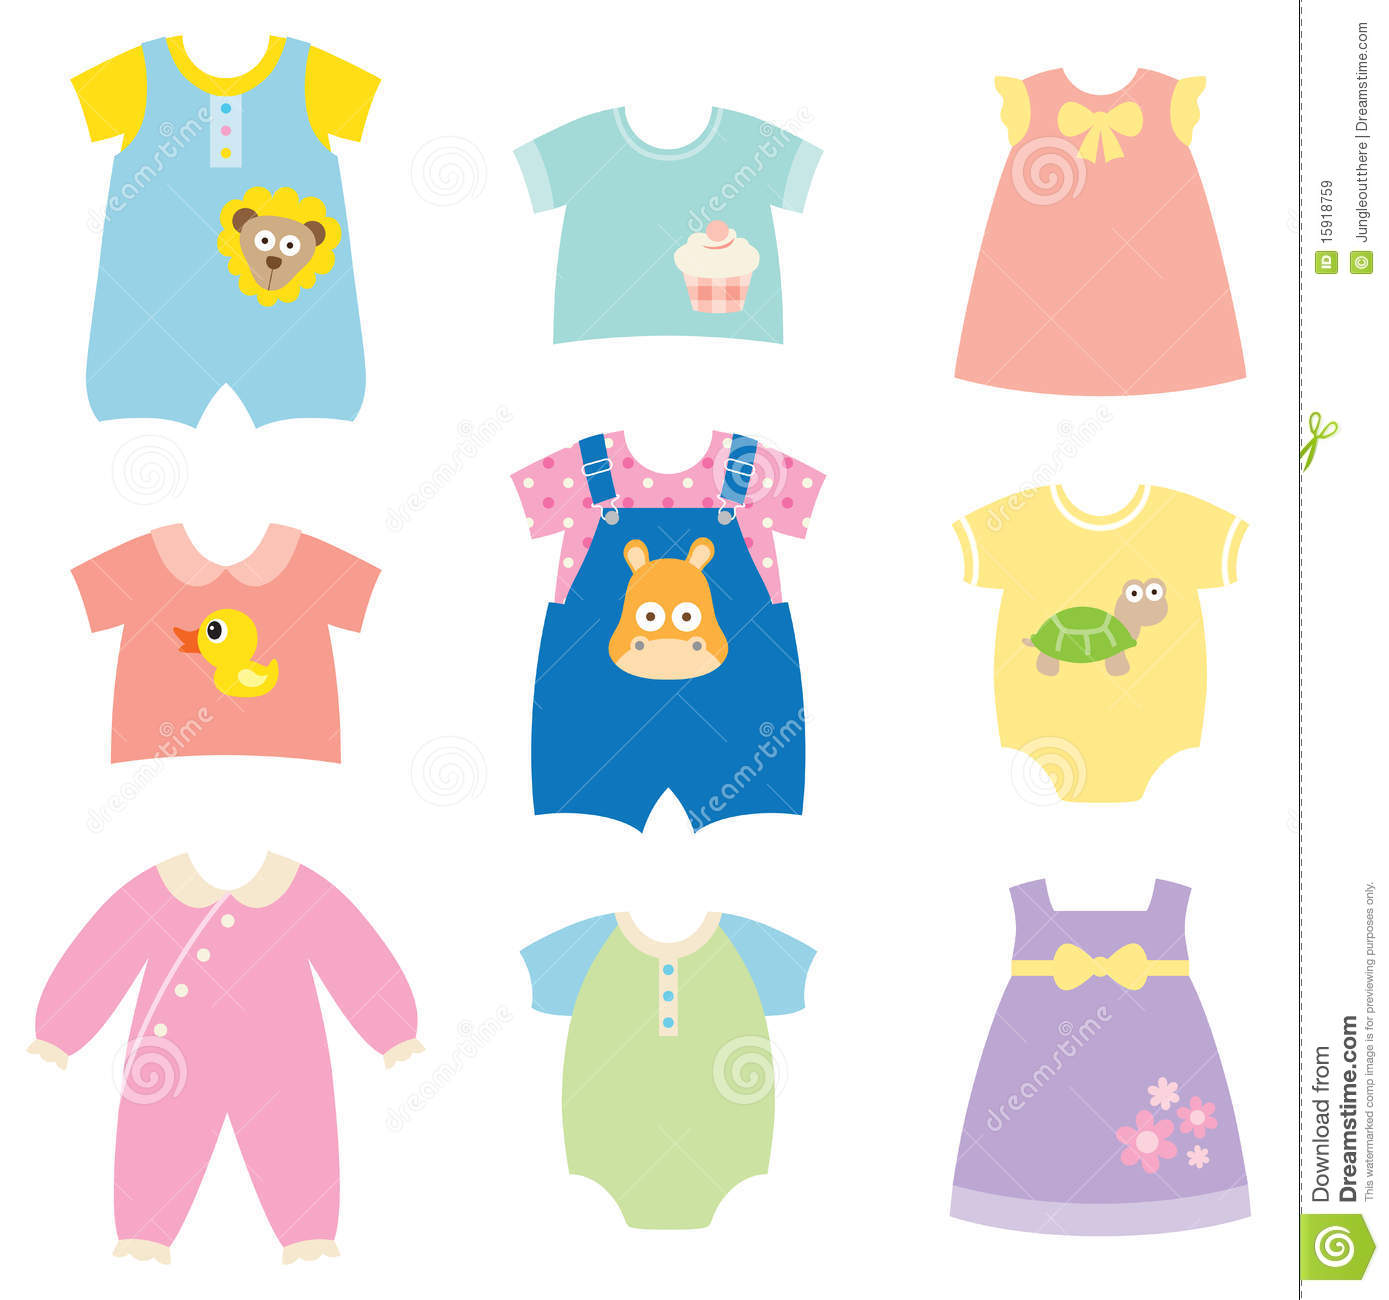 Clipart of baby clothes graphic royalty free 101+ Baby Clothes Clipart | ClipartLook graphic royalty free